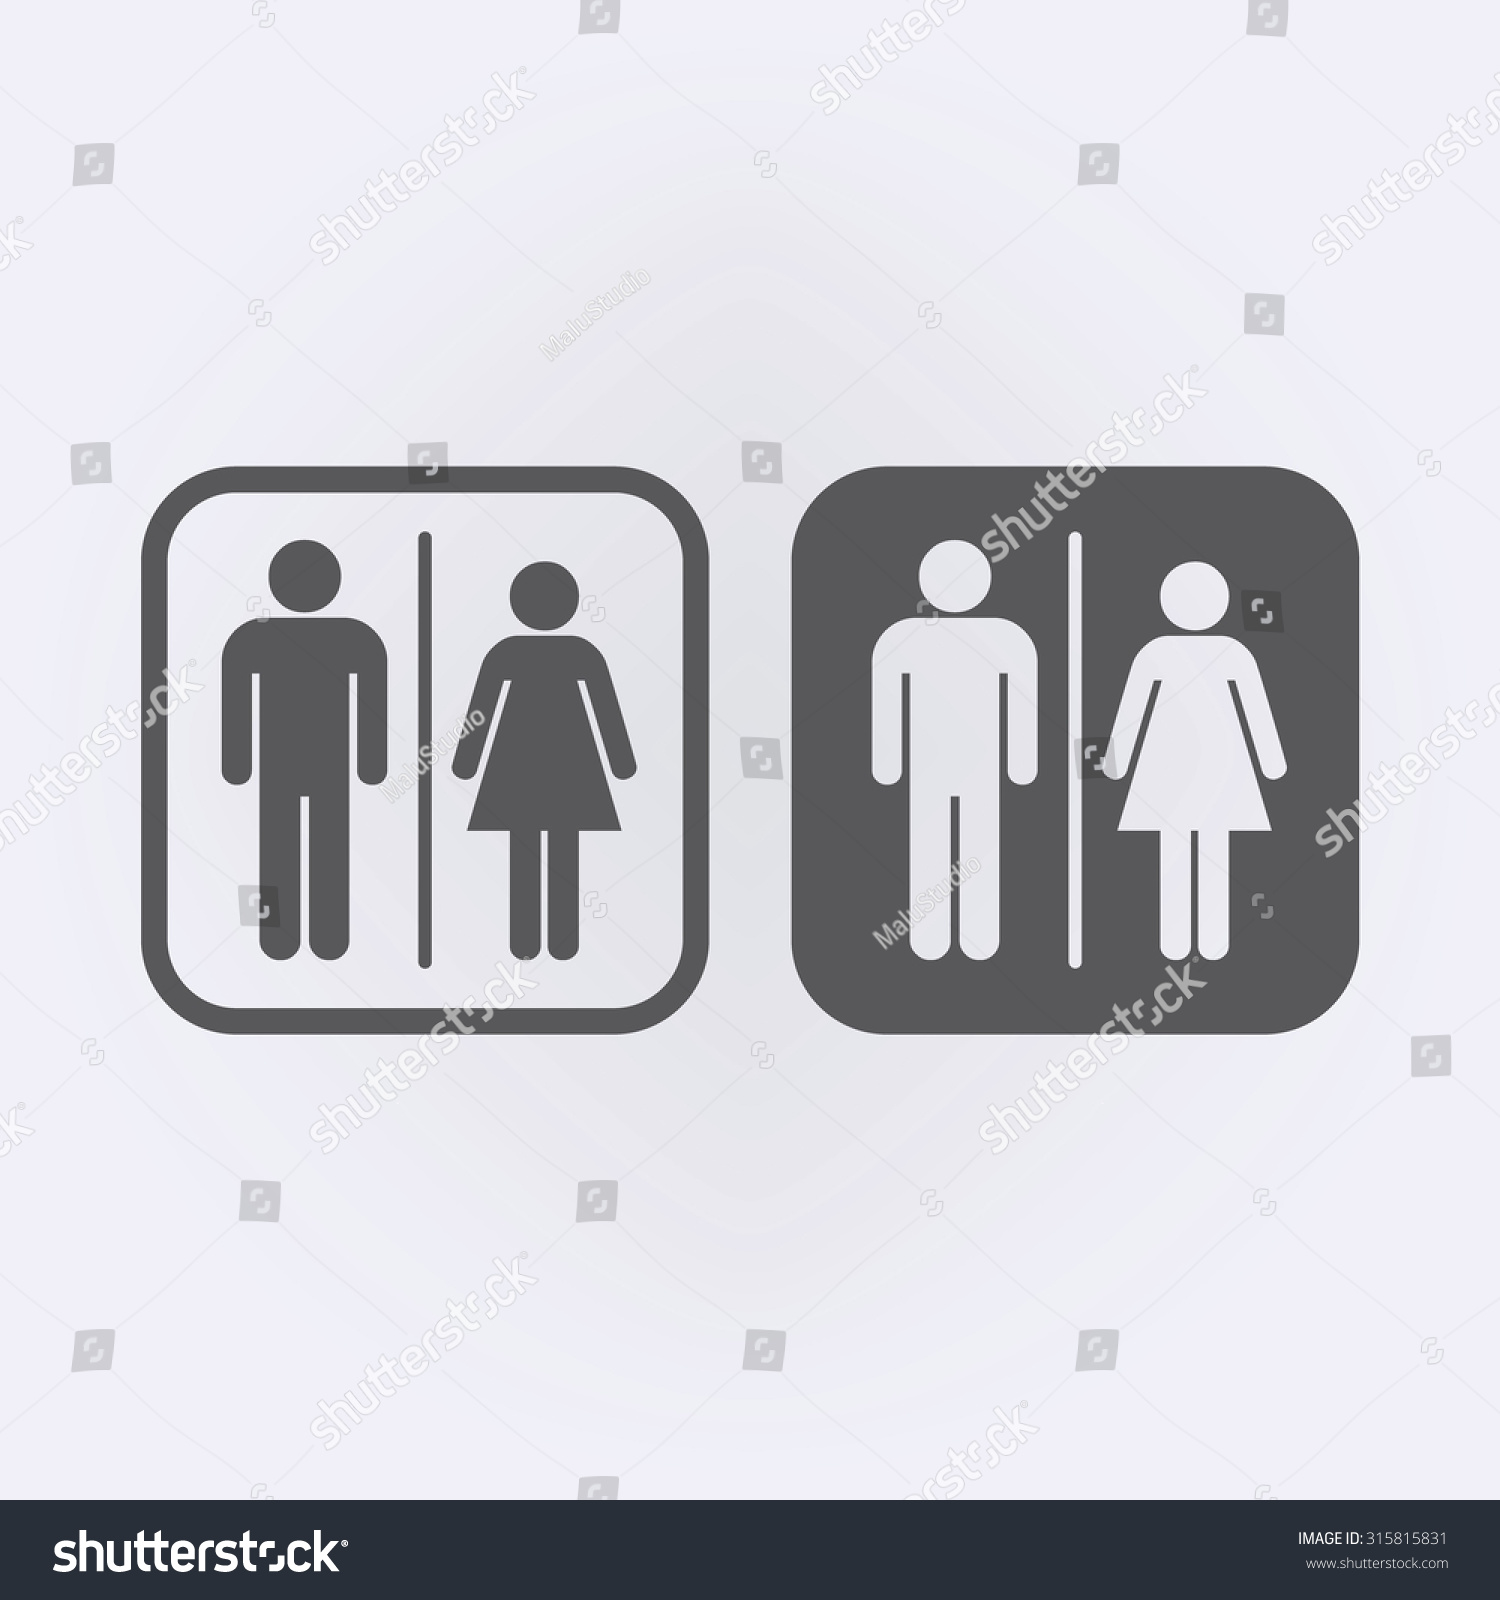 Toilet signs vector set stock images image 36323784 - Man Lady Toilet Sign People Icon Stock Vector 315815831 Shutterstock Stock Vector A Man And A Lady Toilet Sign People Icon Set Vector Illustration 315815831